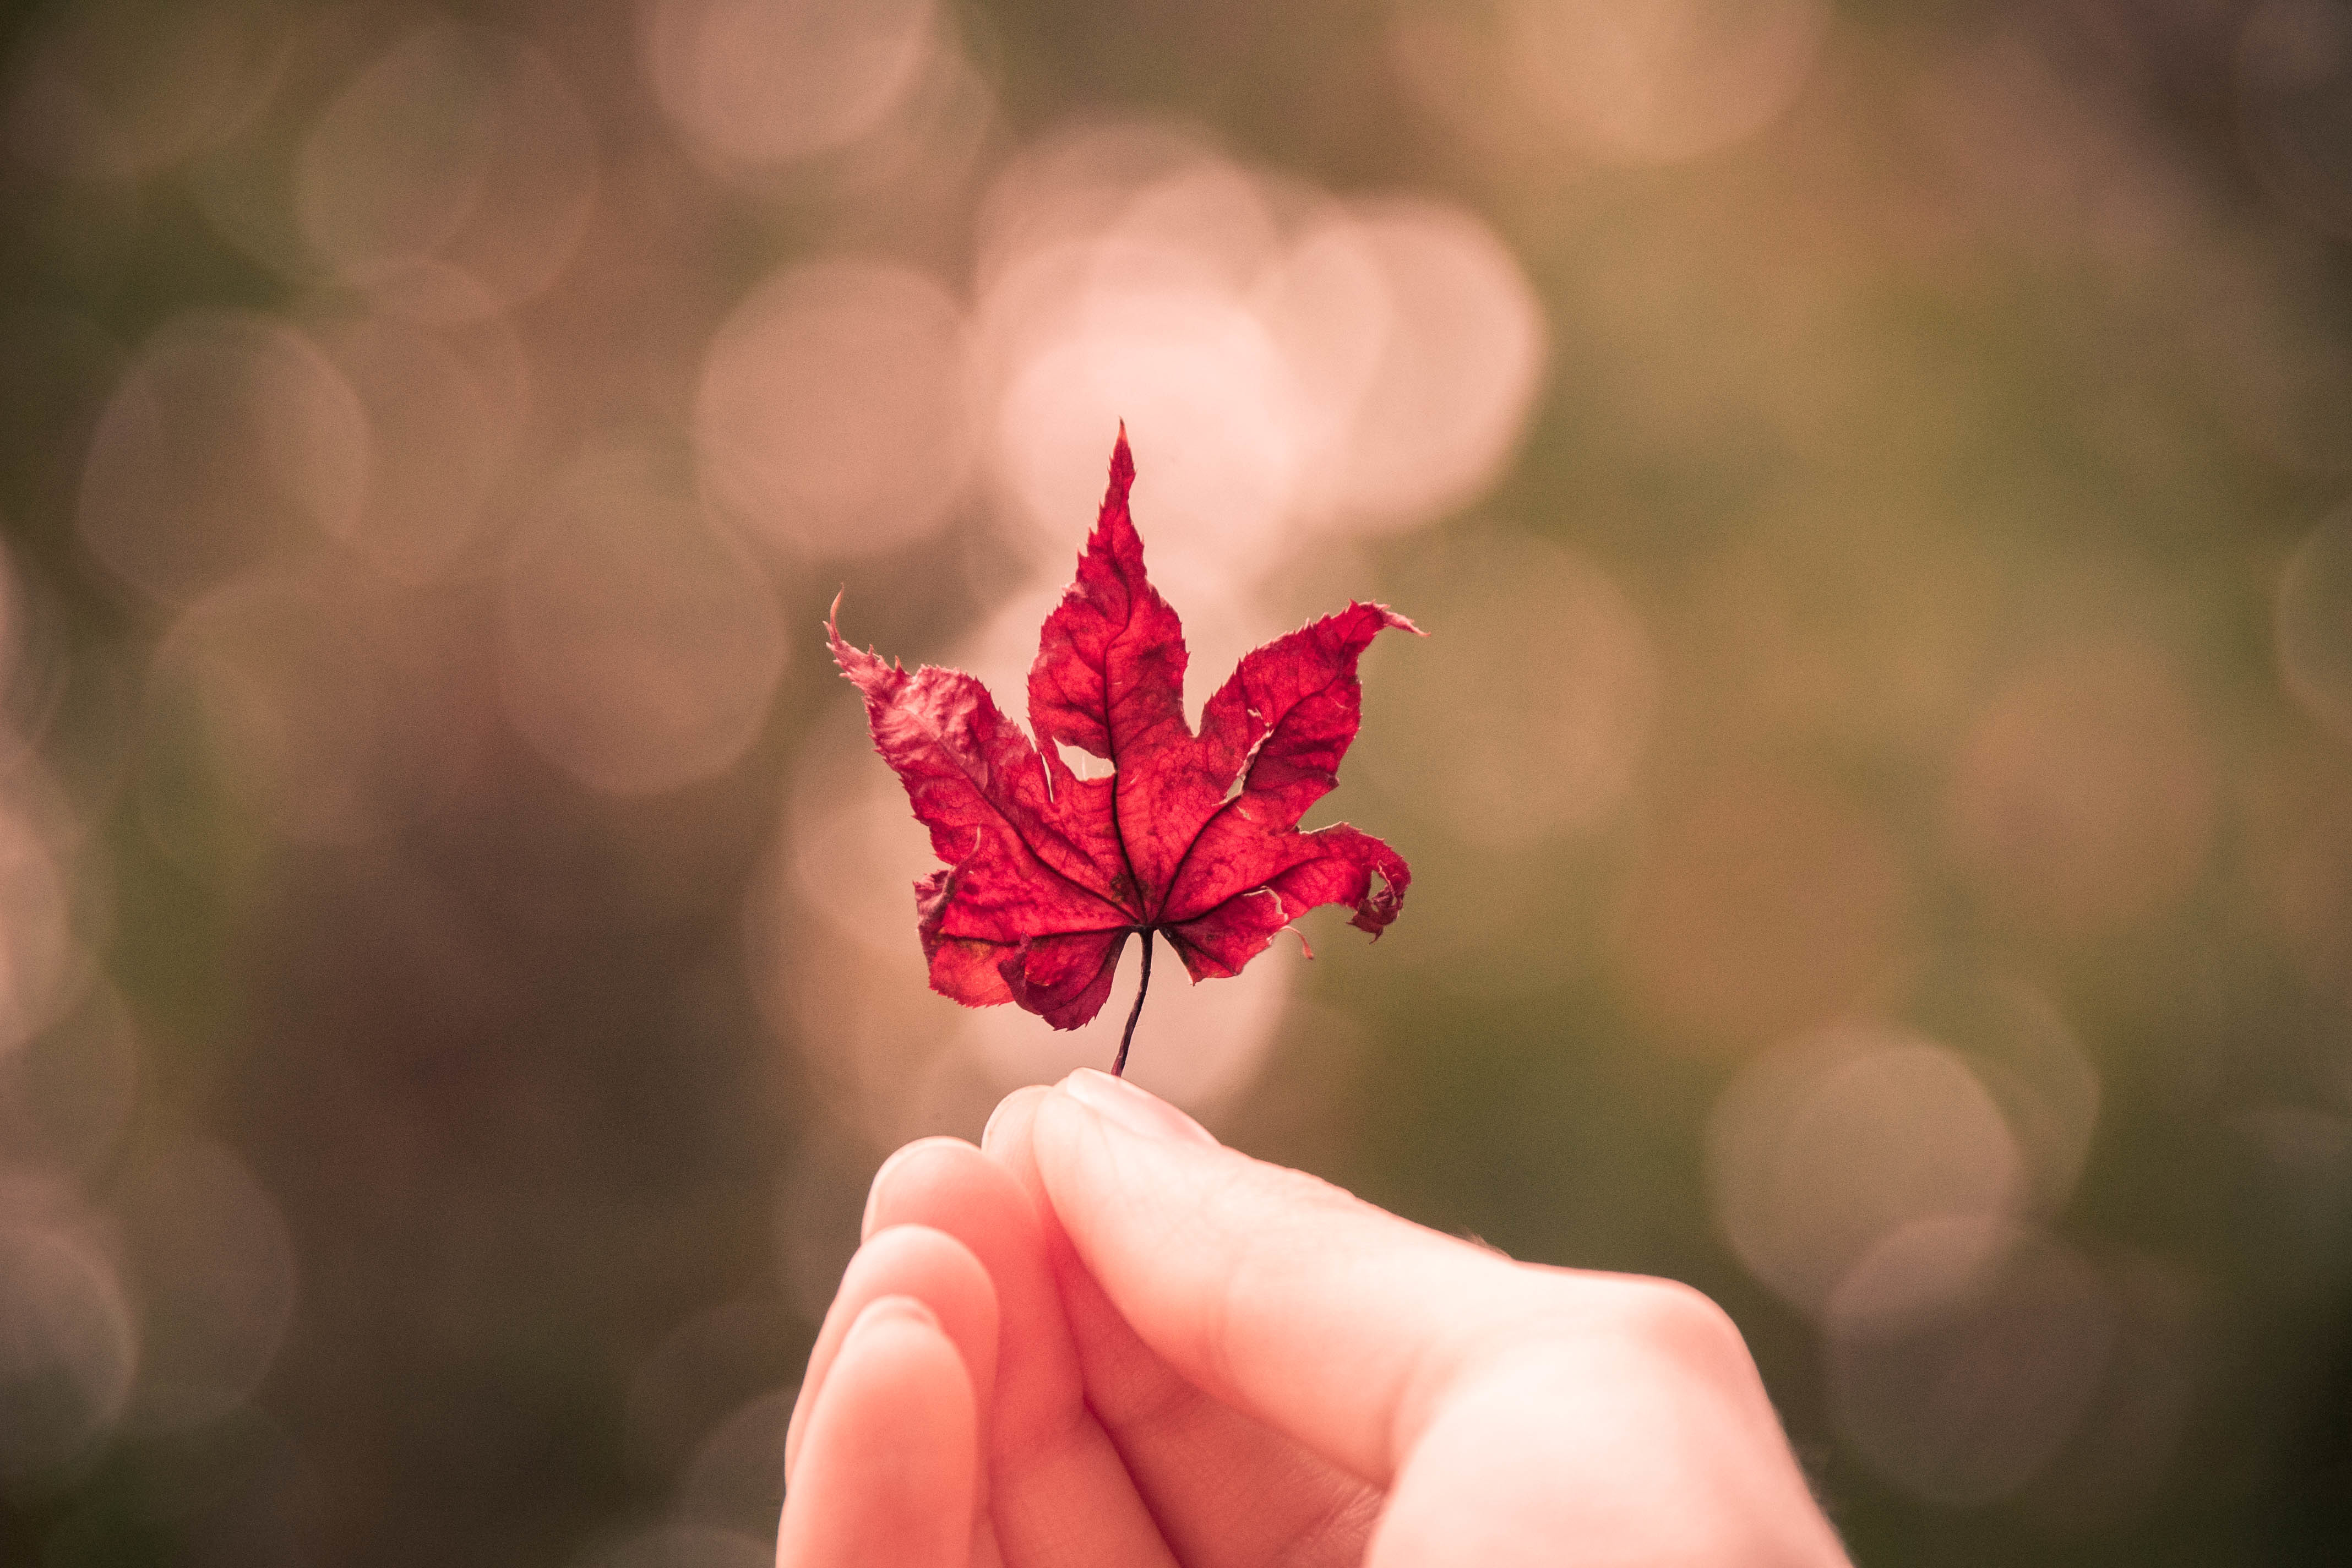 135549 Screensavers and Wallpapers Hand for phone. Download Macro, Sheet, Leaf, Maple, Hand, Glare pictures for free